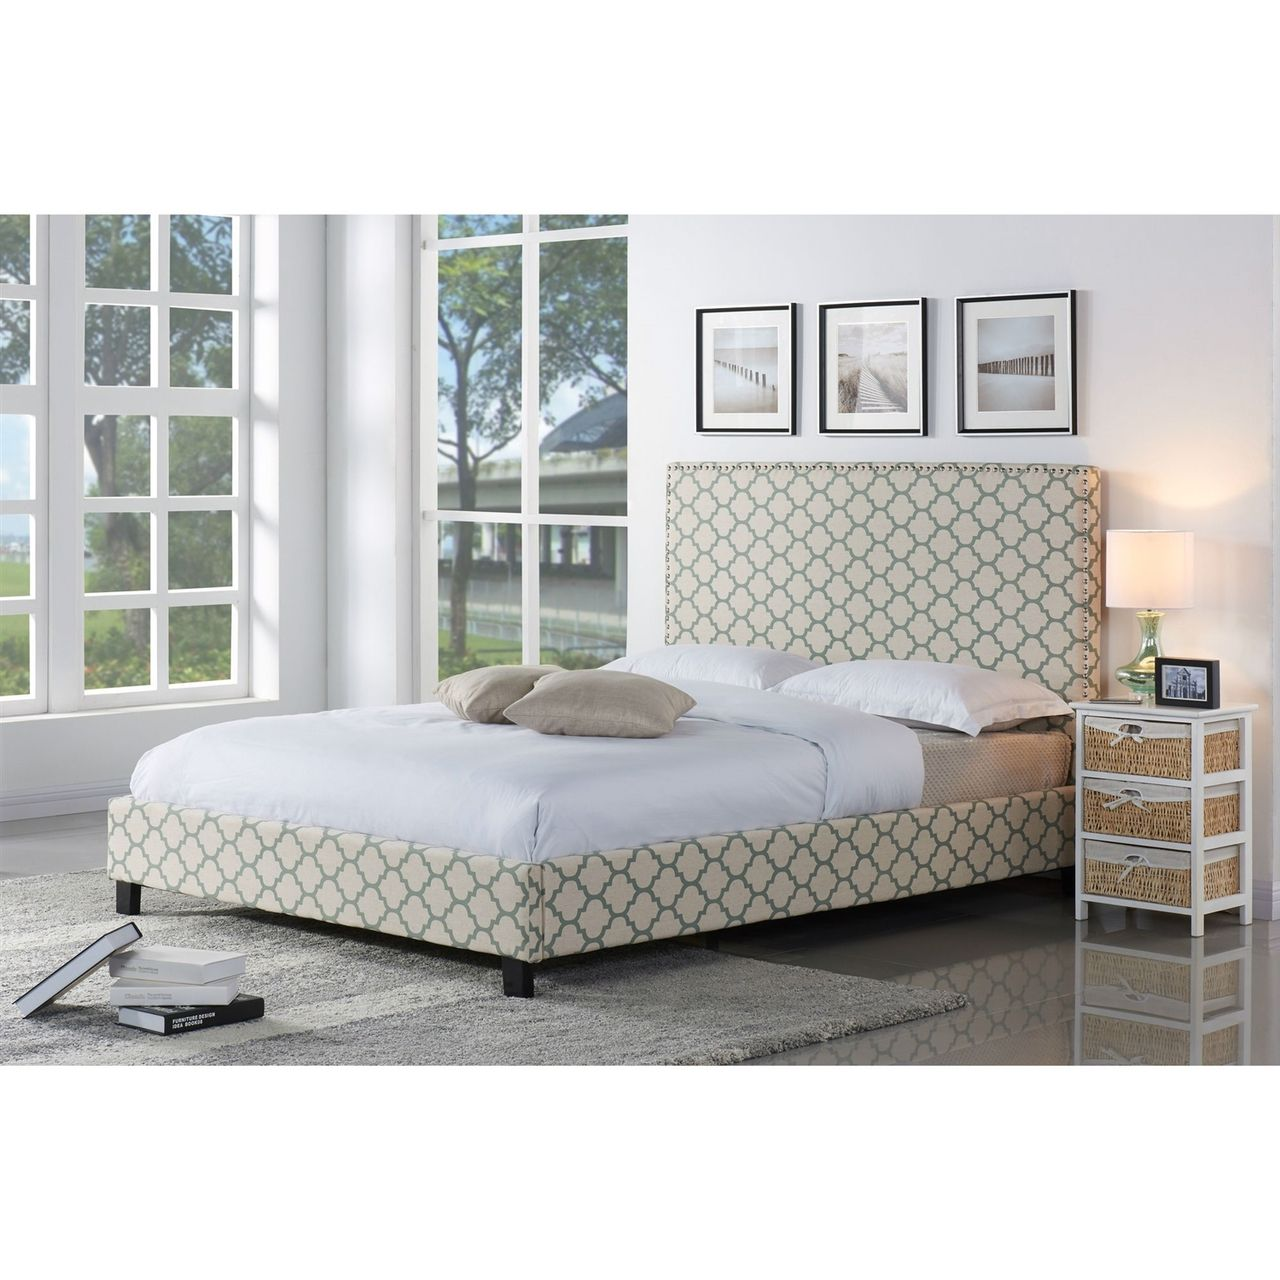 Full size Upholstered Platform Bed and Headboard with Lattice Sea-foam  Trellis - Quality House